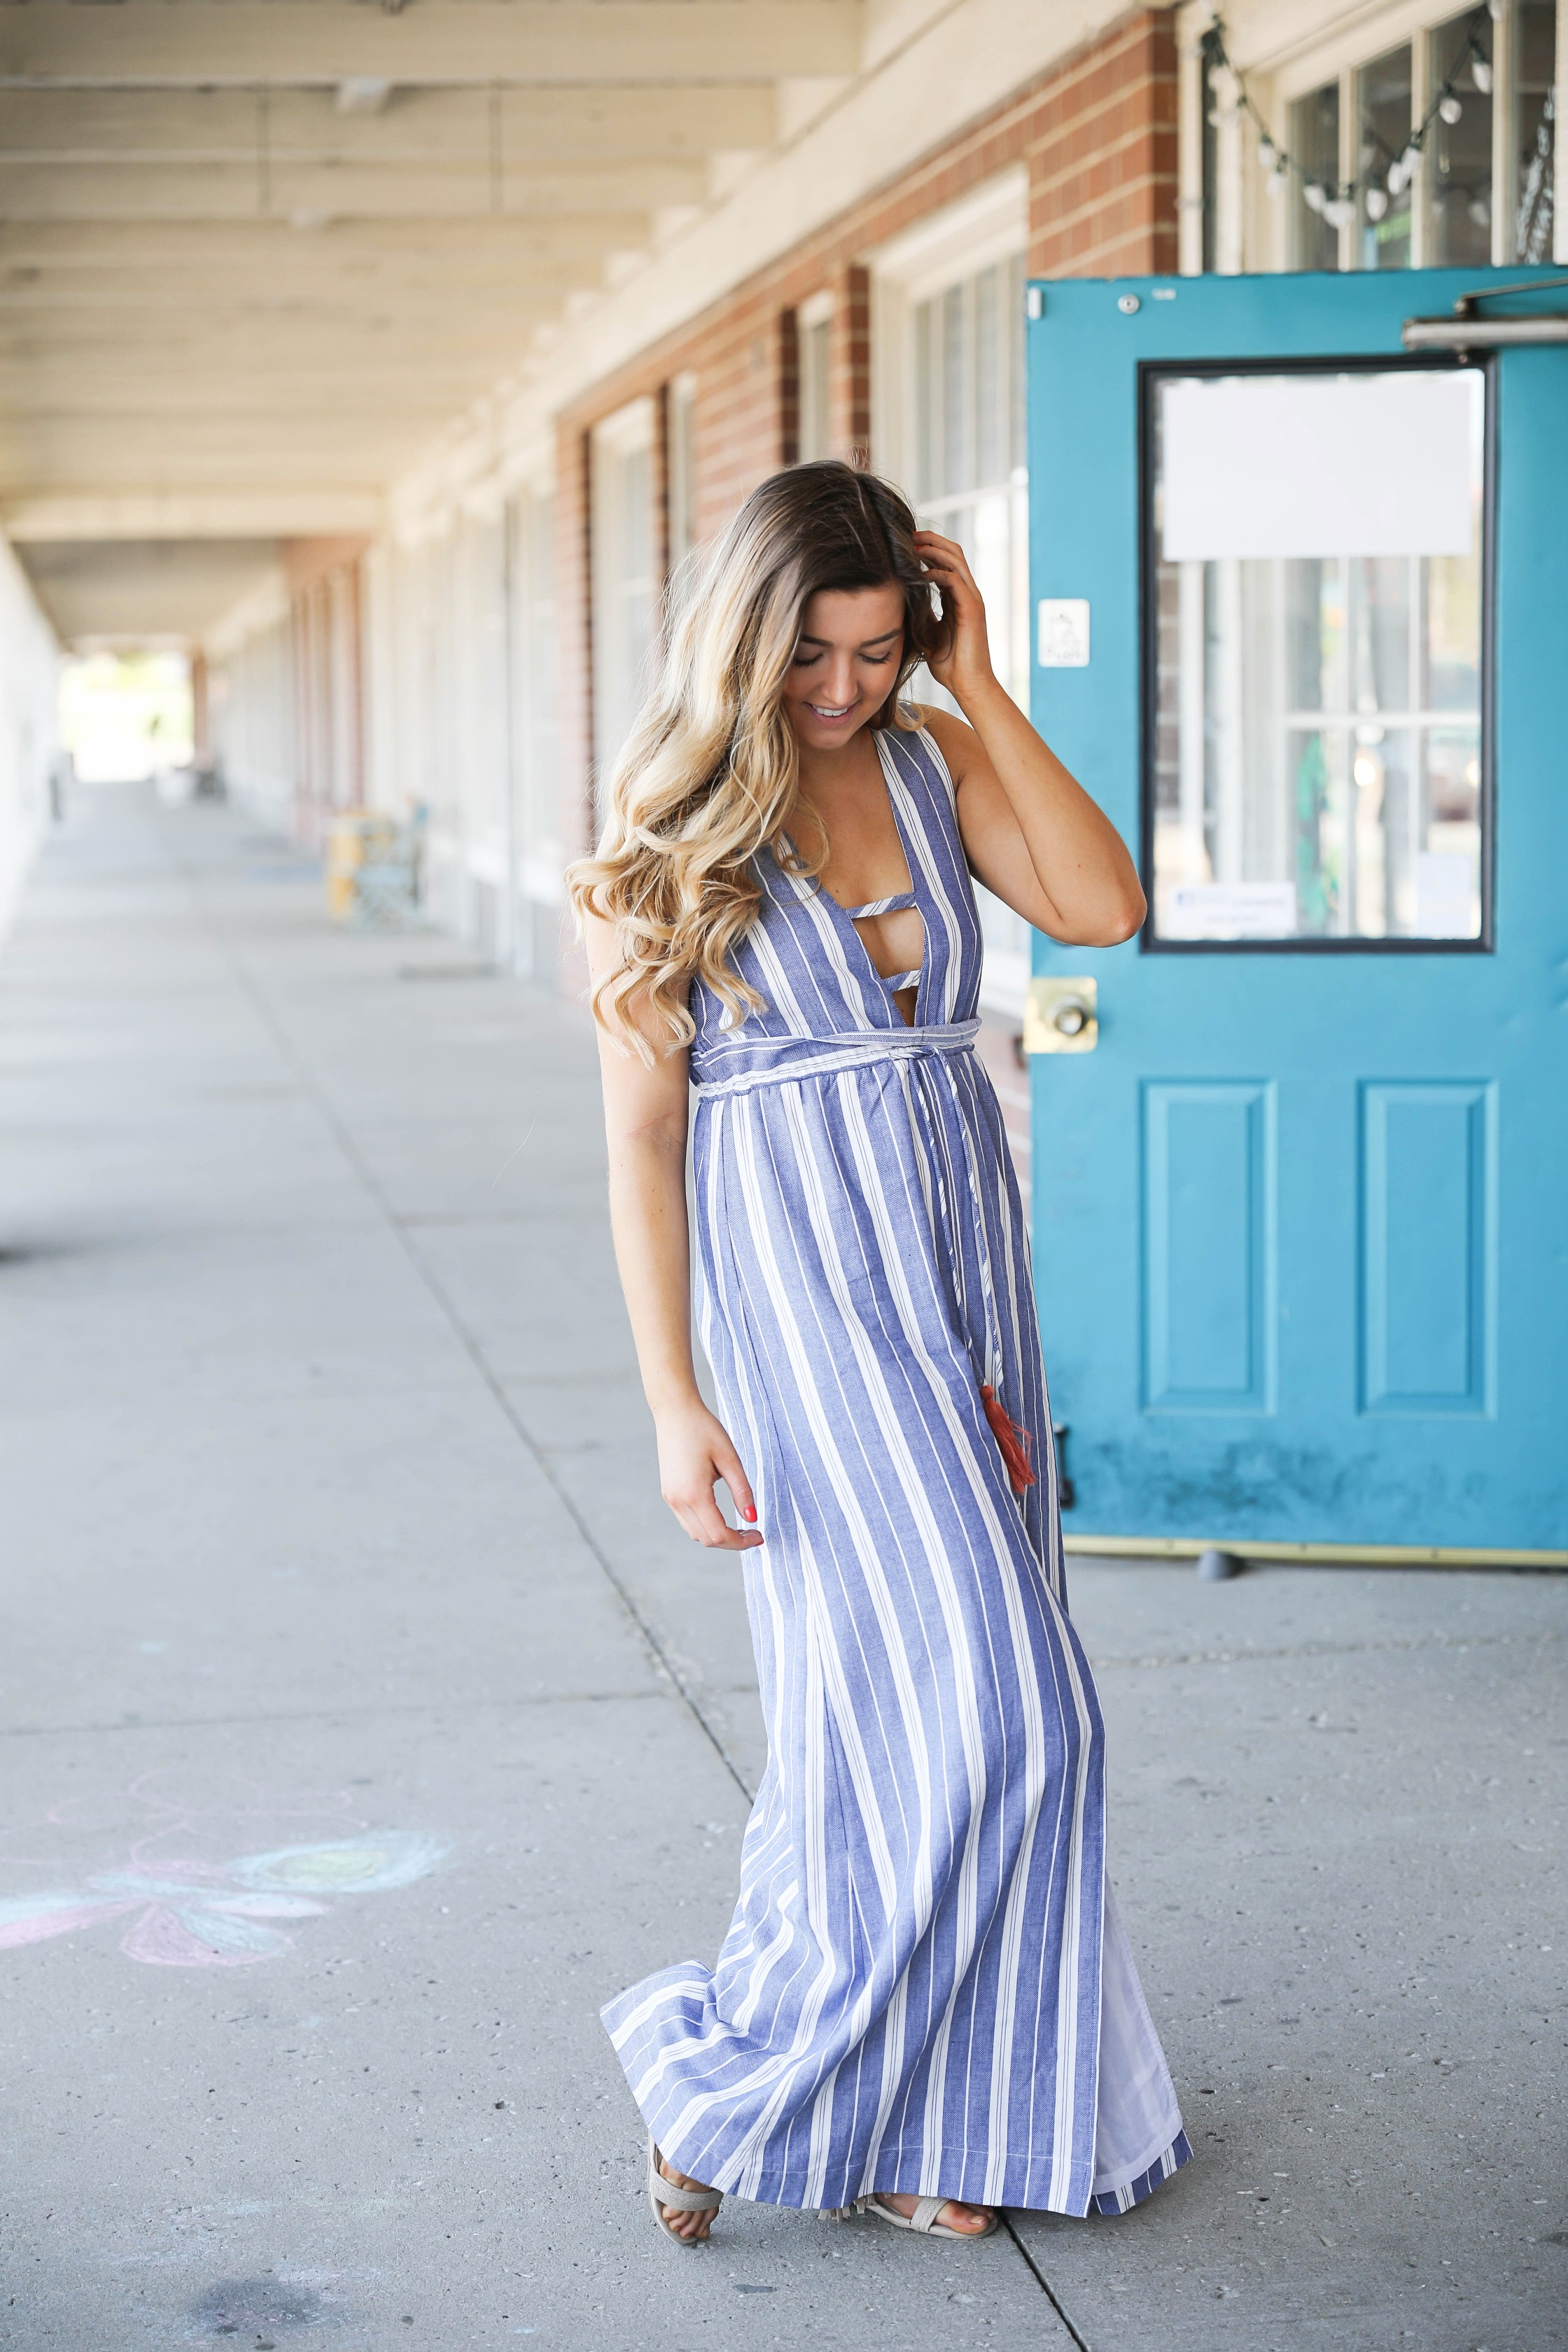 How cute is this Nautical Striped Tassel Dress? I have been loving dresses for spring and summer and this one is one of my favorites! Perfect for boating or days by the beach. By Lauren Lindmark on daily dose of charm dailydoseofcharm.com